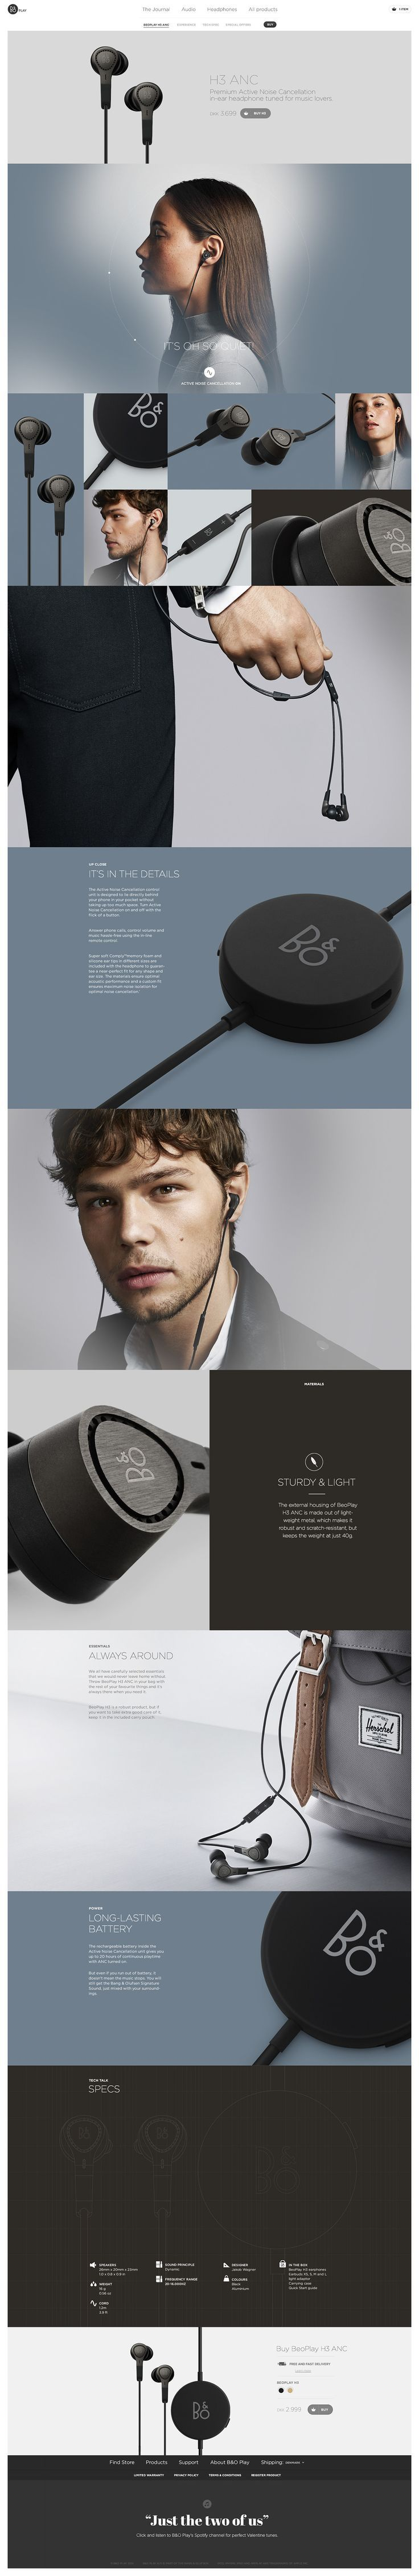 BeoPlay H3 by Søren Smidt #webdesign